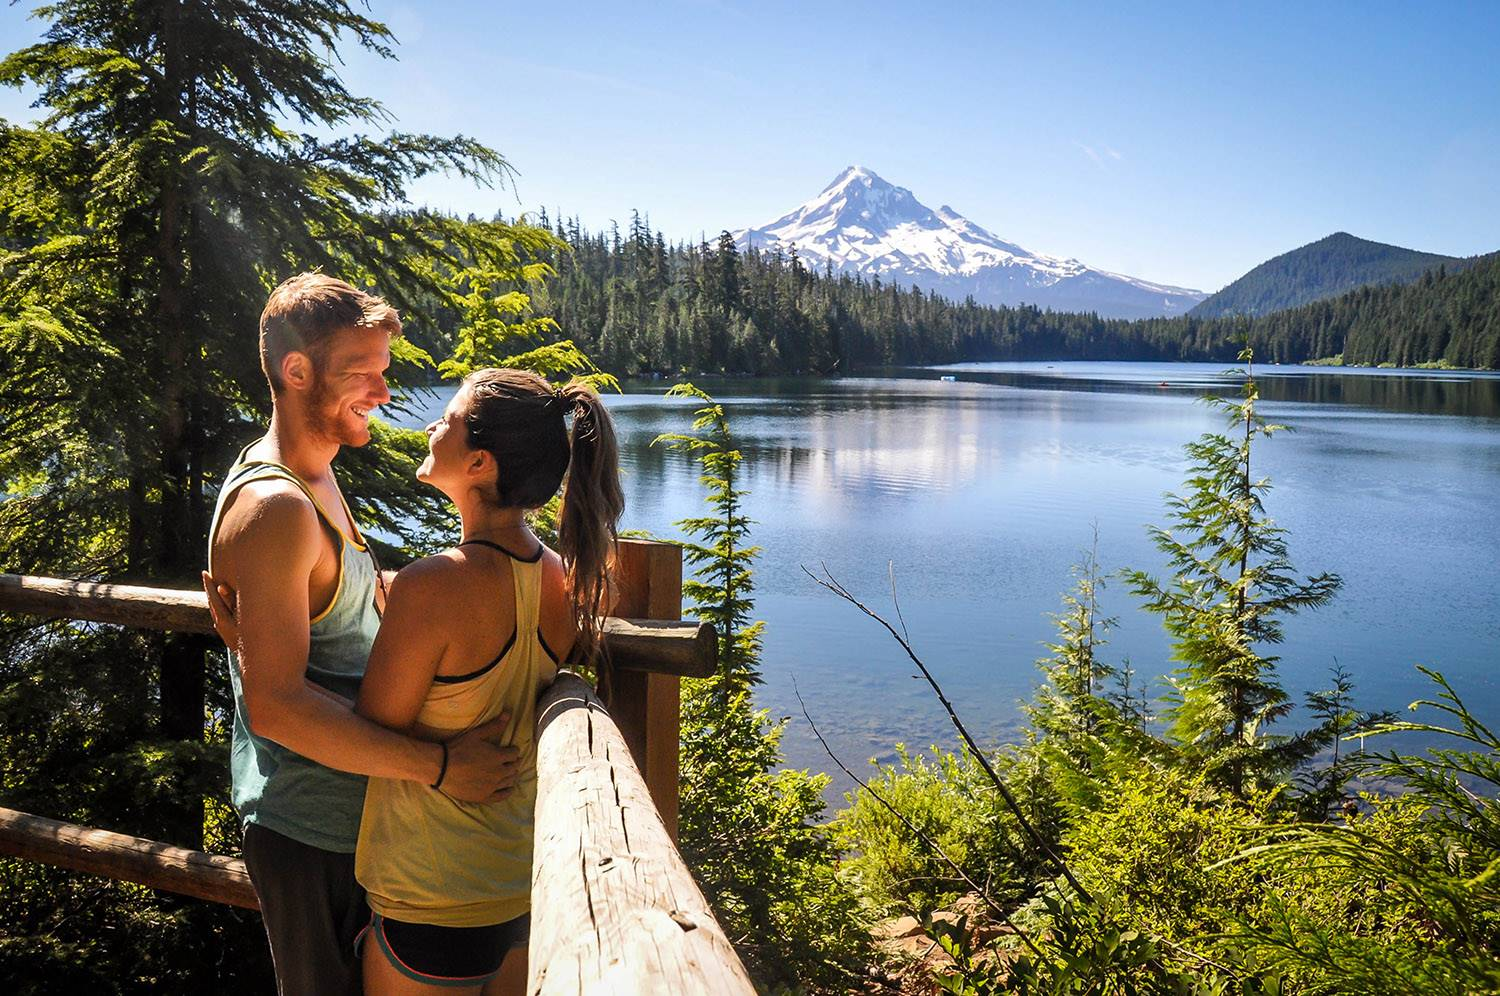 Lost Lake Viewpoint in Mount Hood National Forest, Oregon